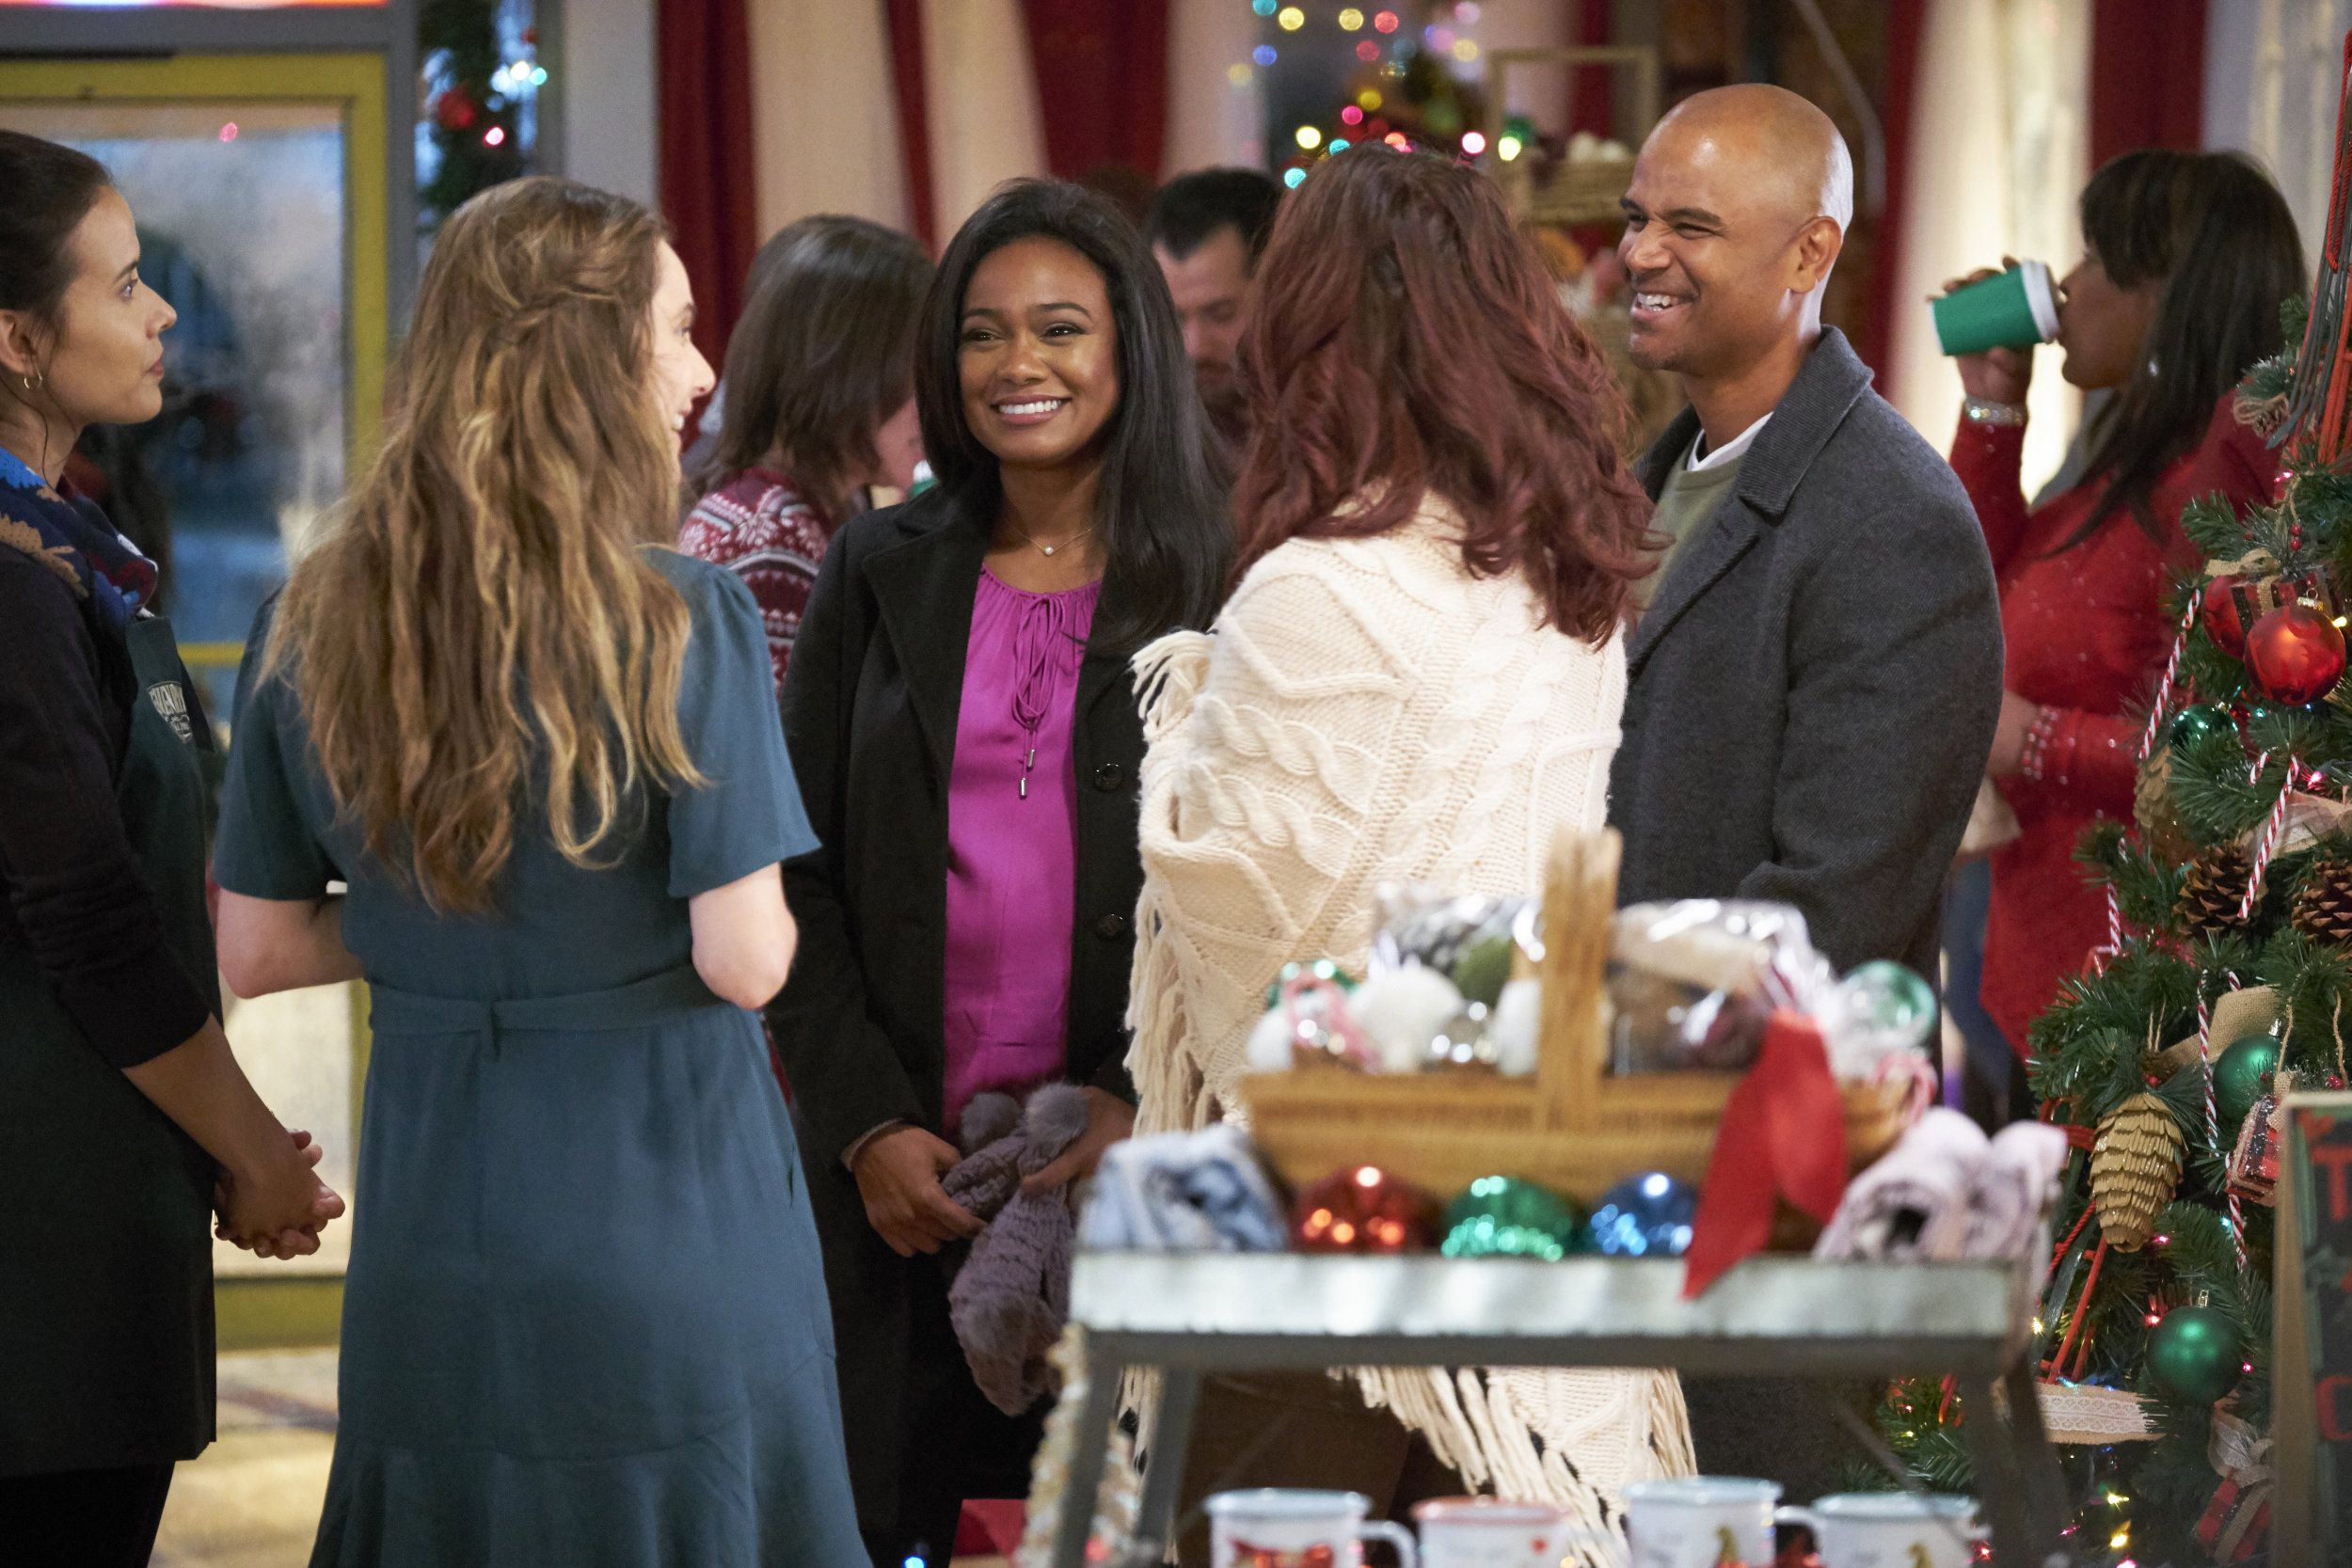 Christmas Everlasting Cast.Find Out About The Cast Of The Hallmark Hall Of Fame